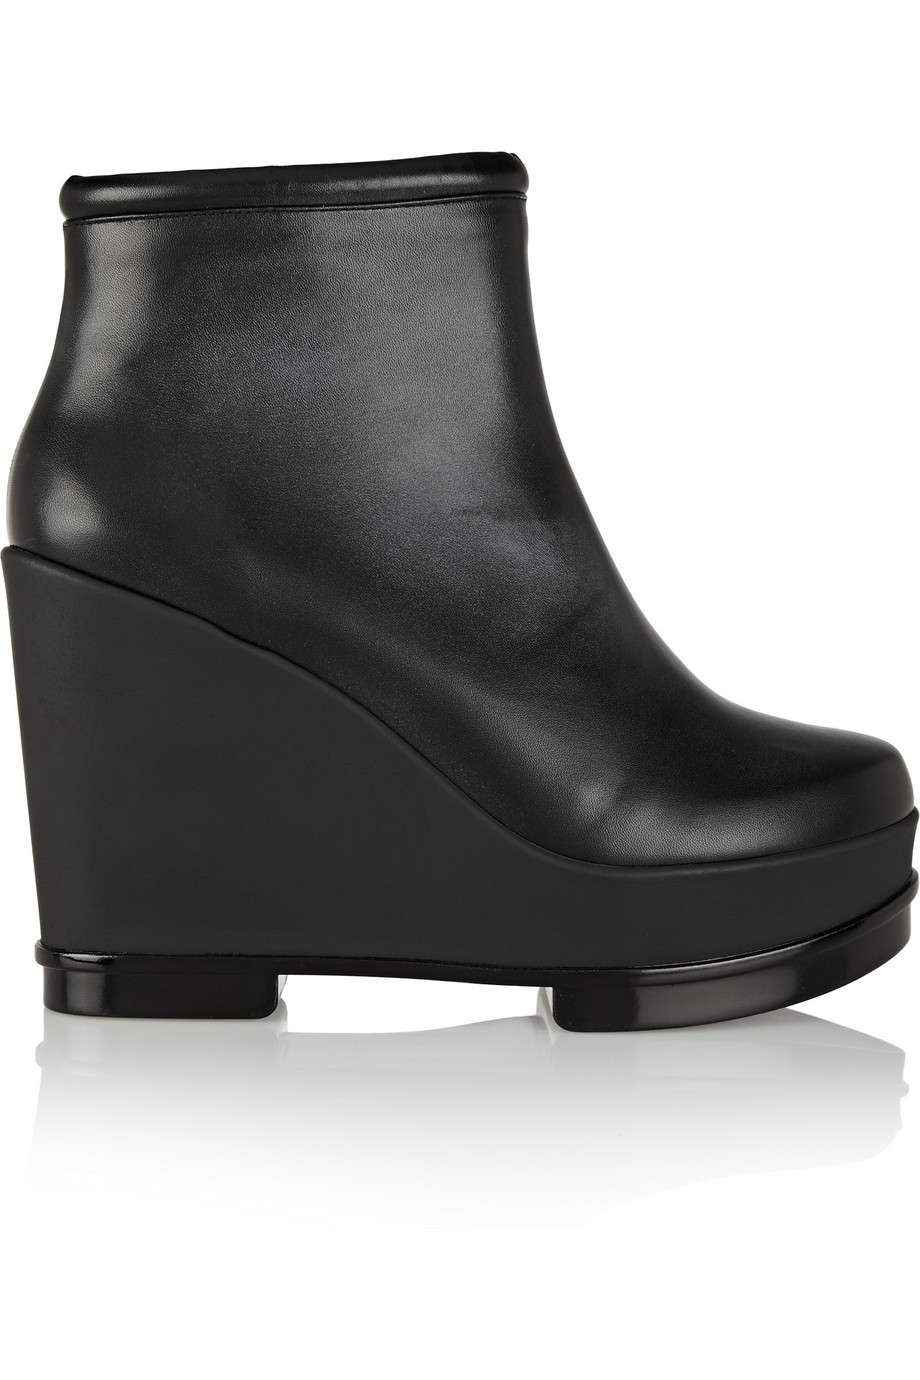 Ankle boot Robert Clergerie